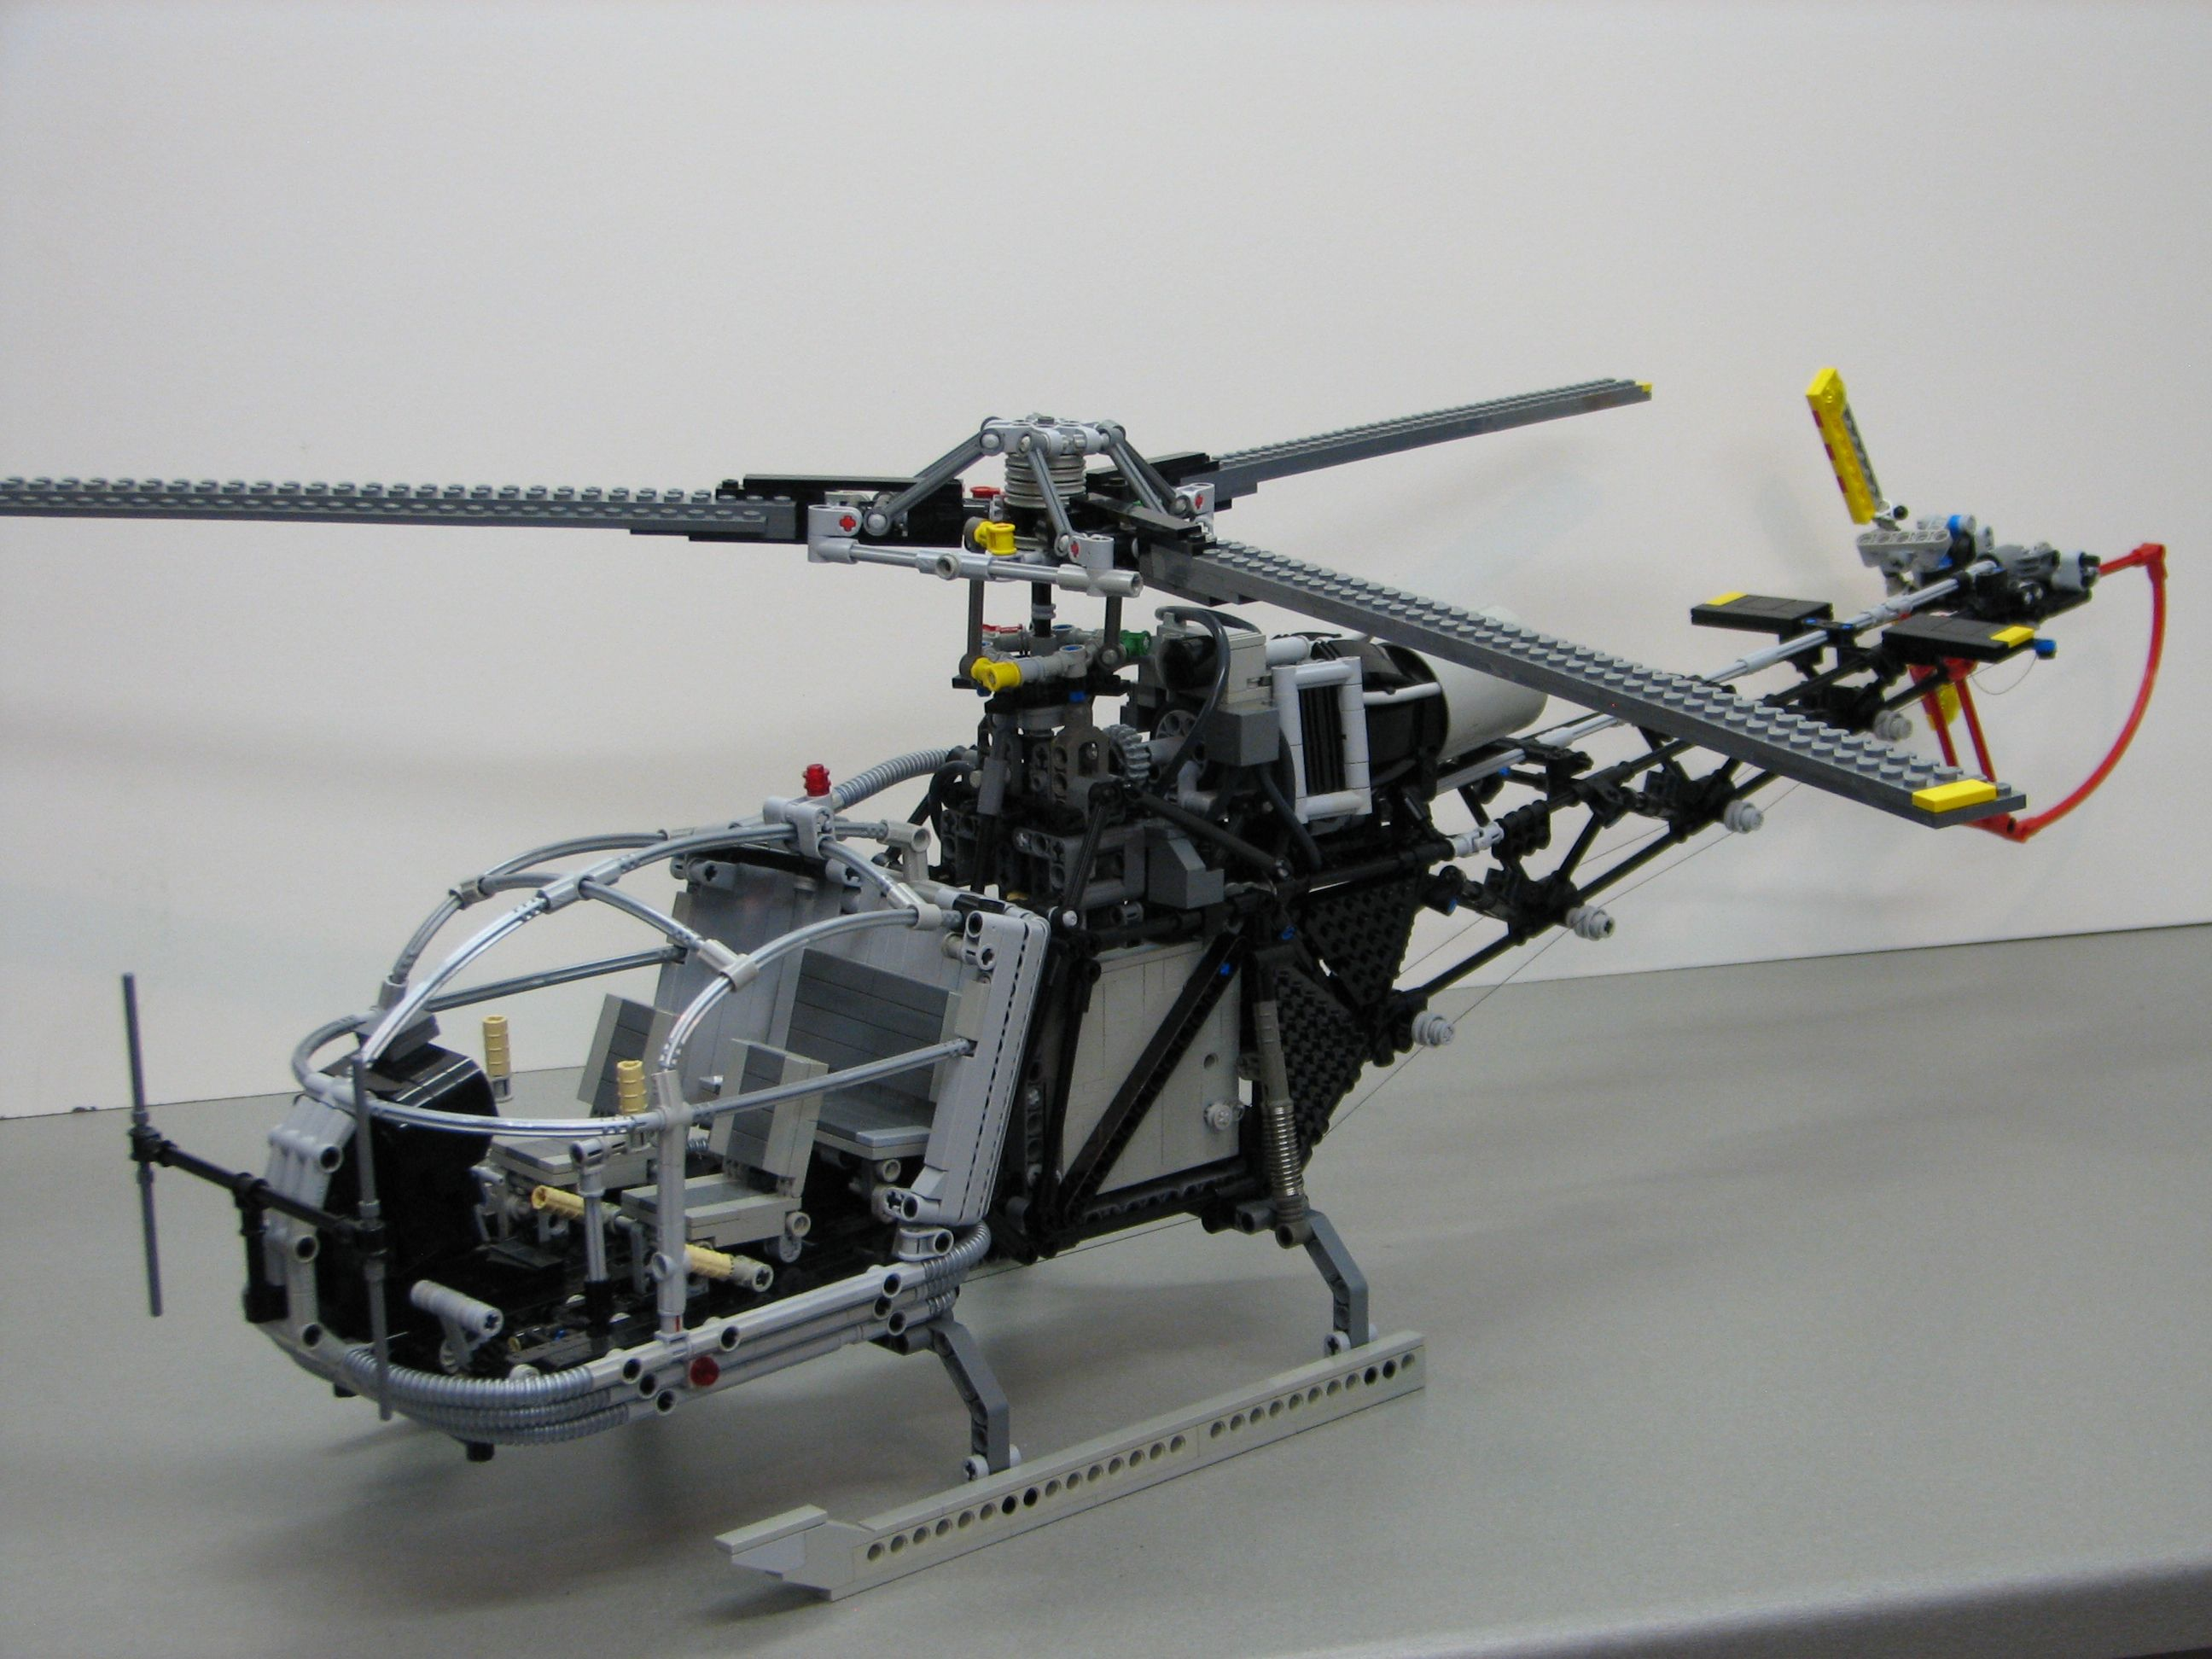 Lego Ii Alouette Véhicules HelicopterHelicopters French K3TlF1cJ